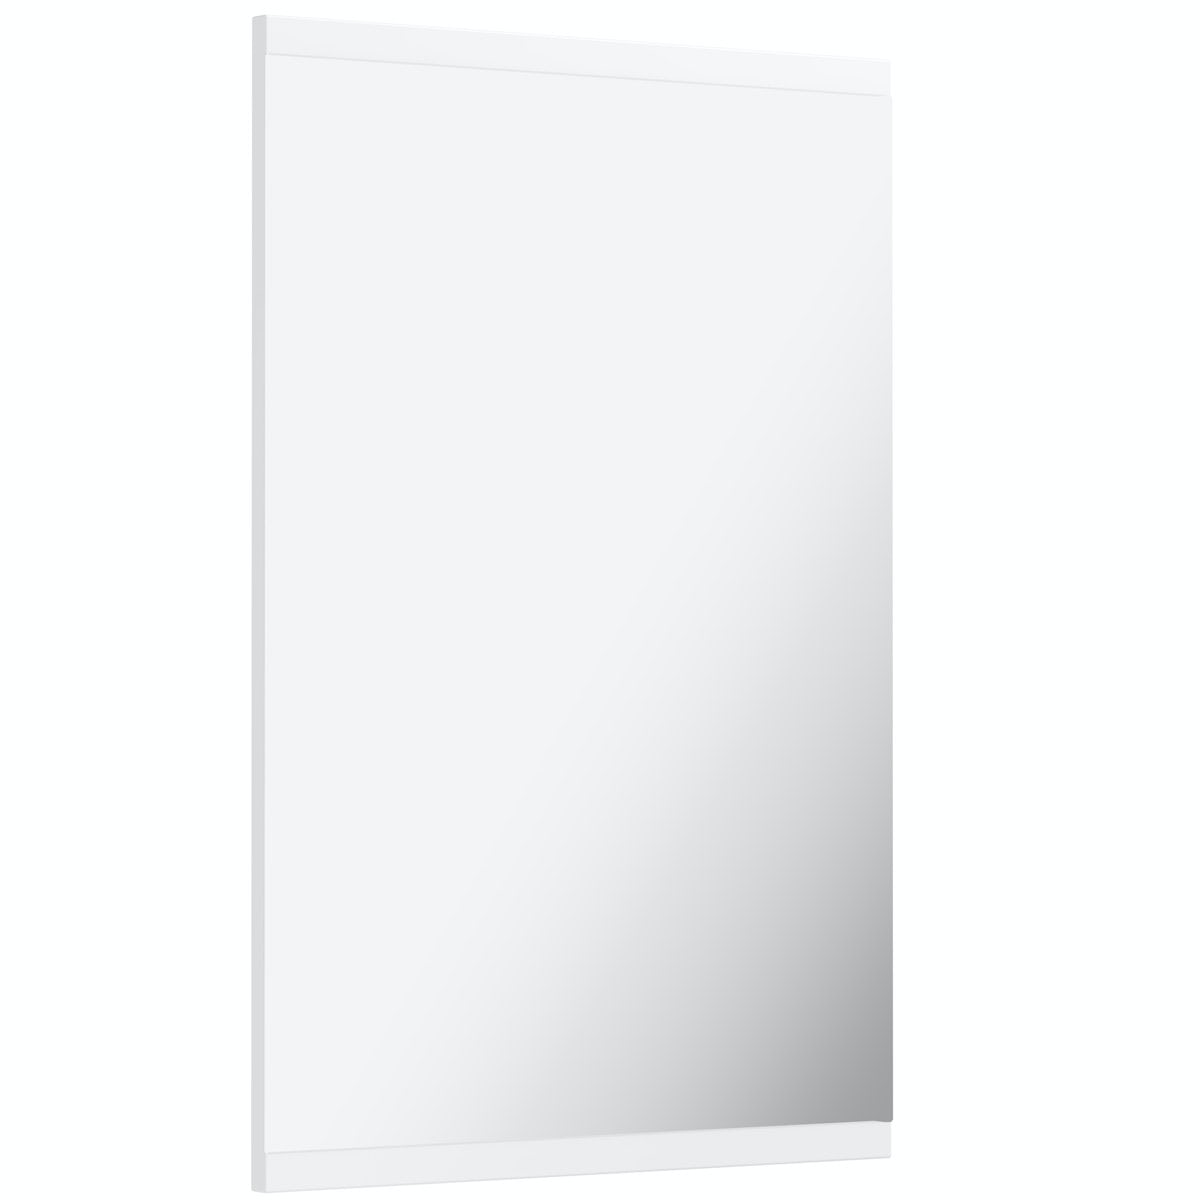 Orchard Eden white mirror 500mm